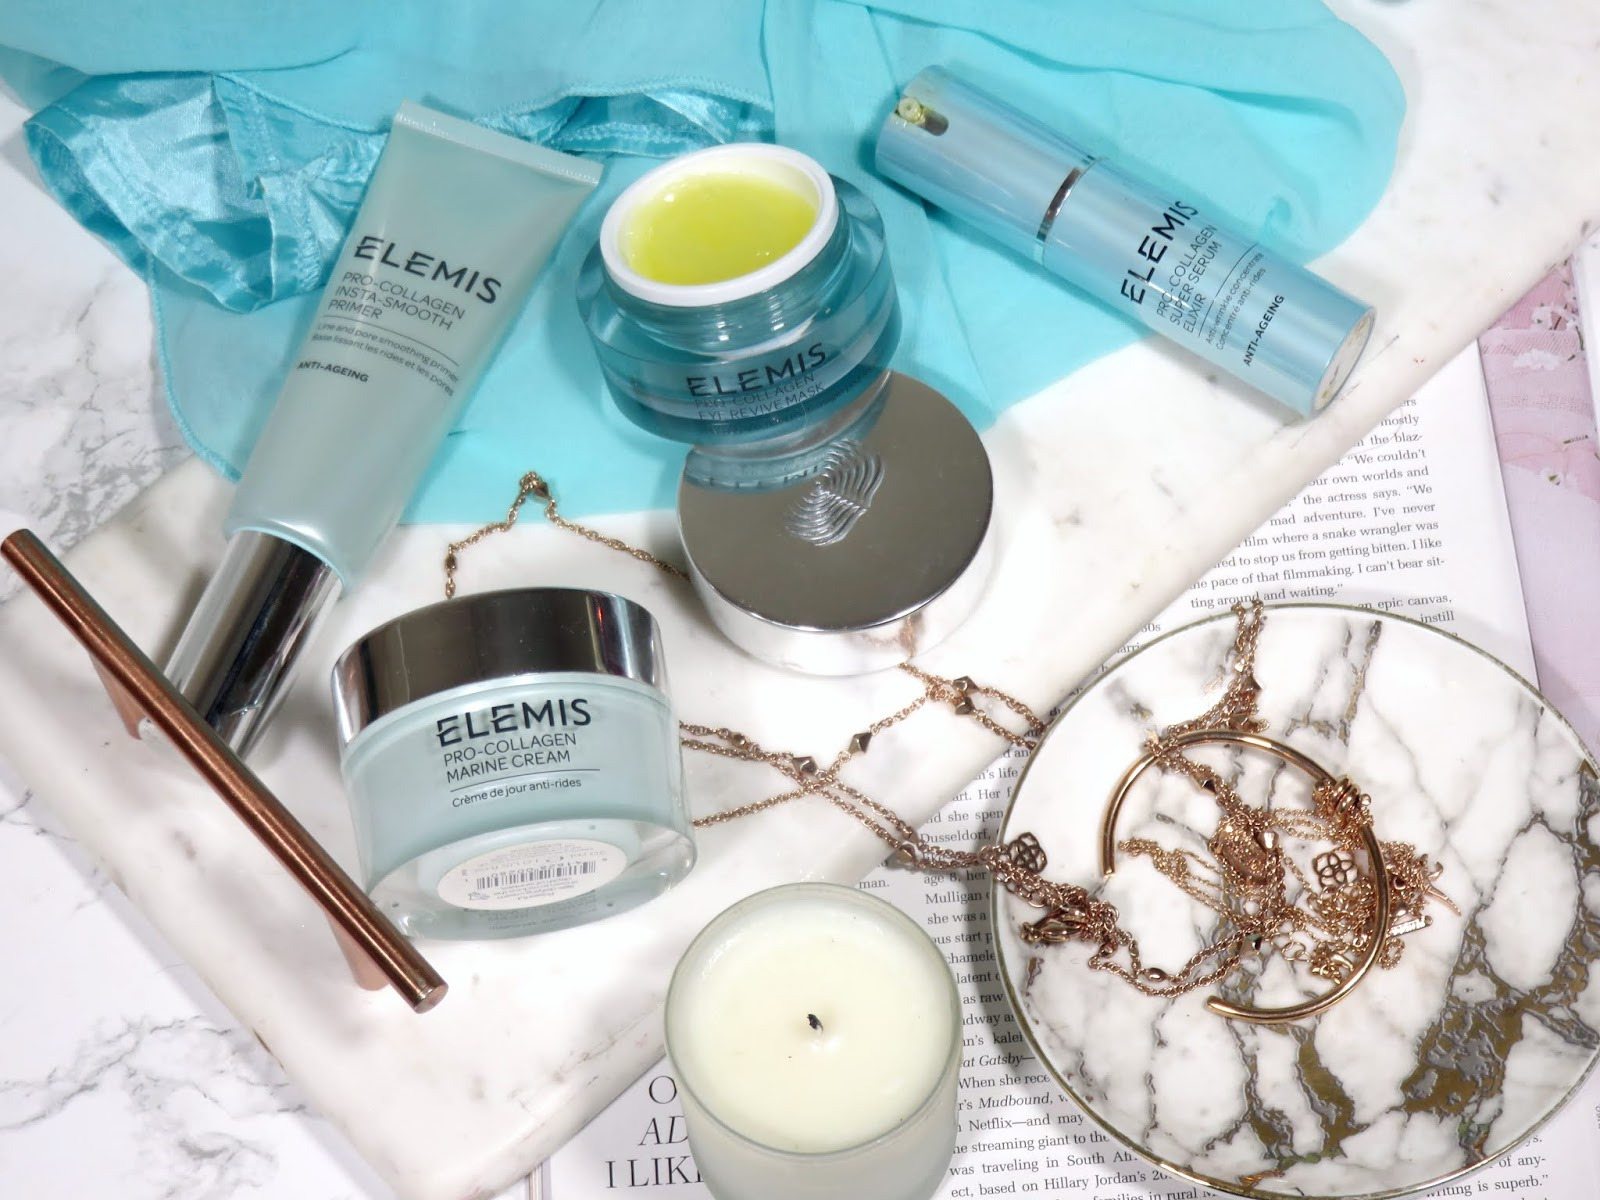 Elemis Pro-Collagen Eye Revive Mask Review